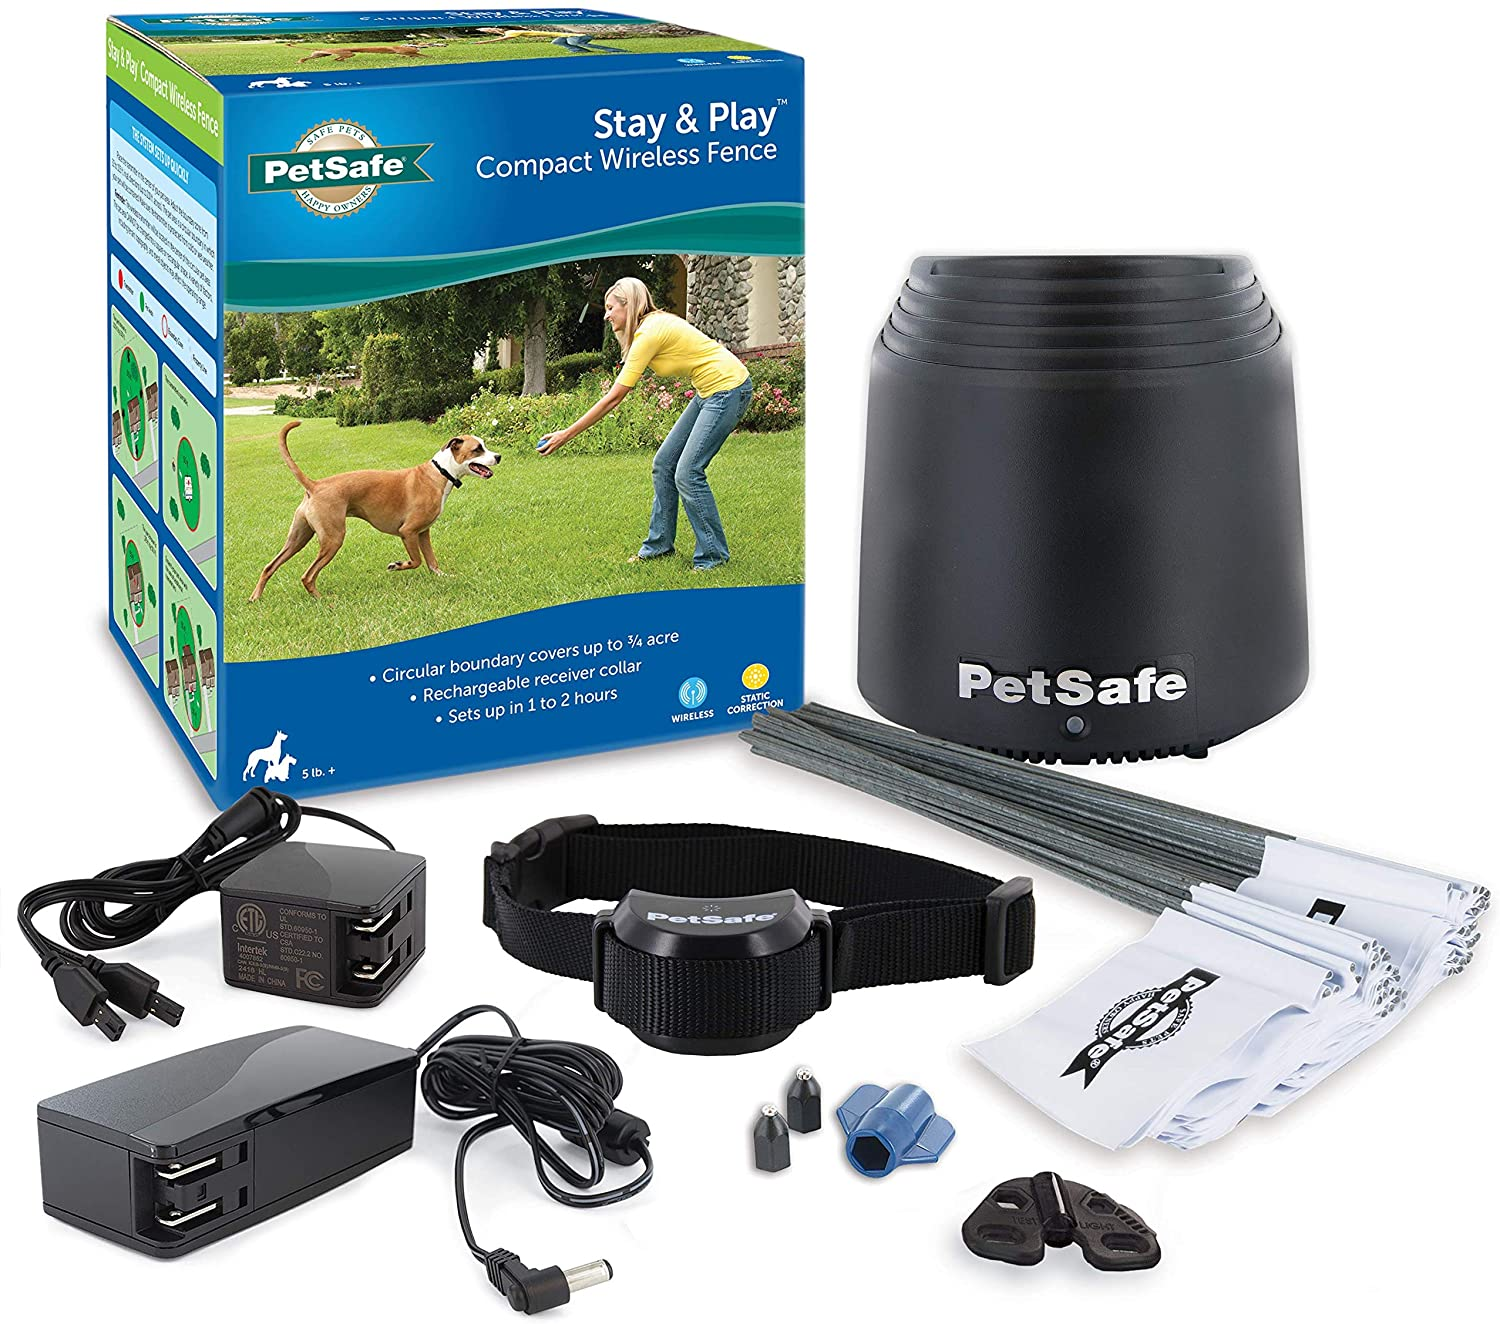 PetSafe Stay & Play Wireless Fence